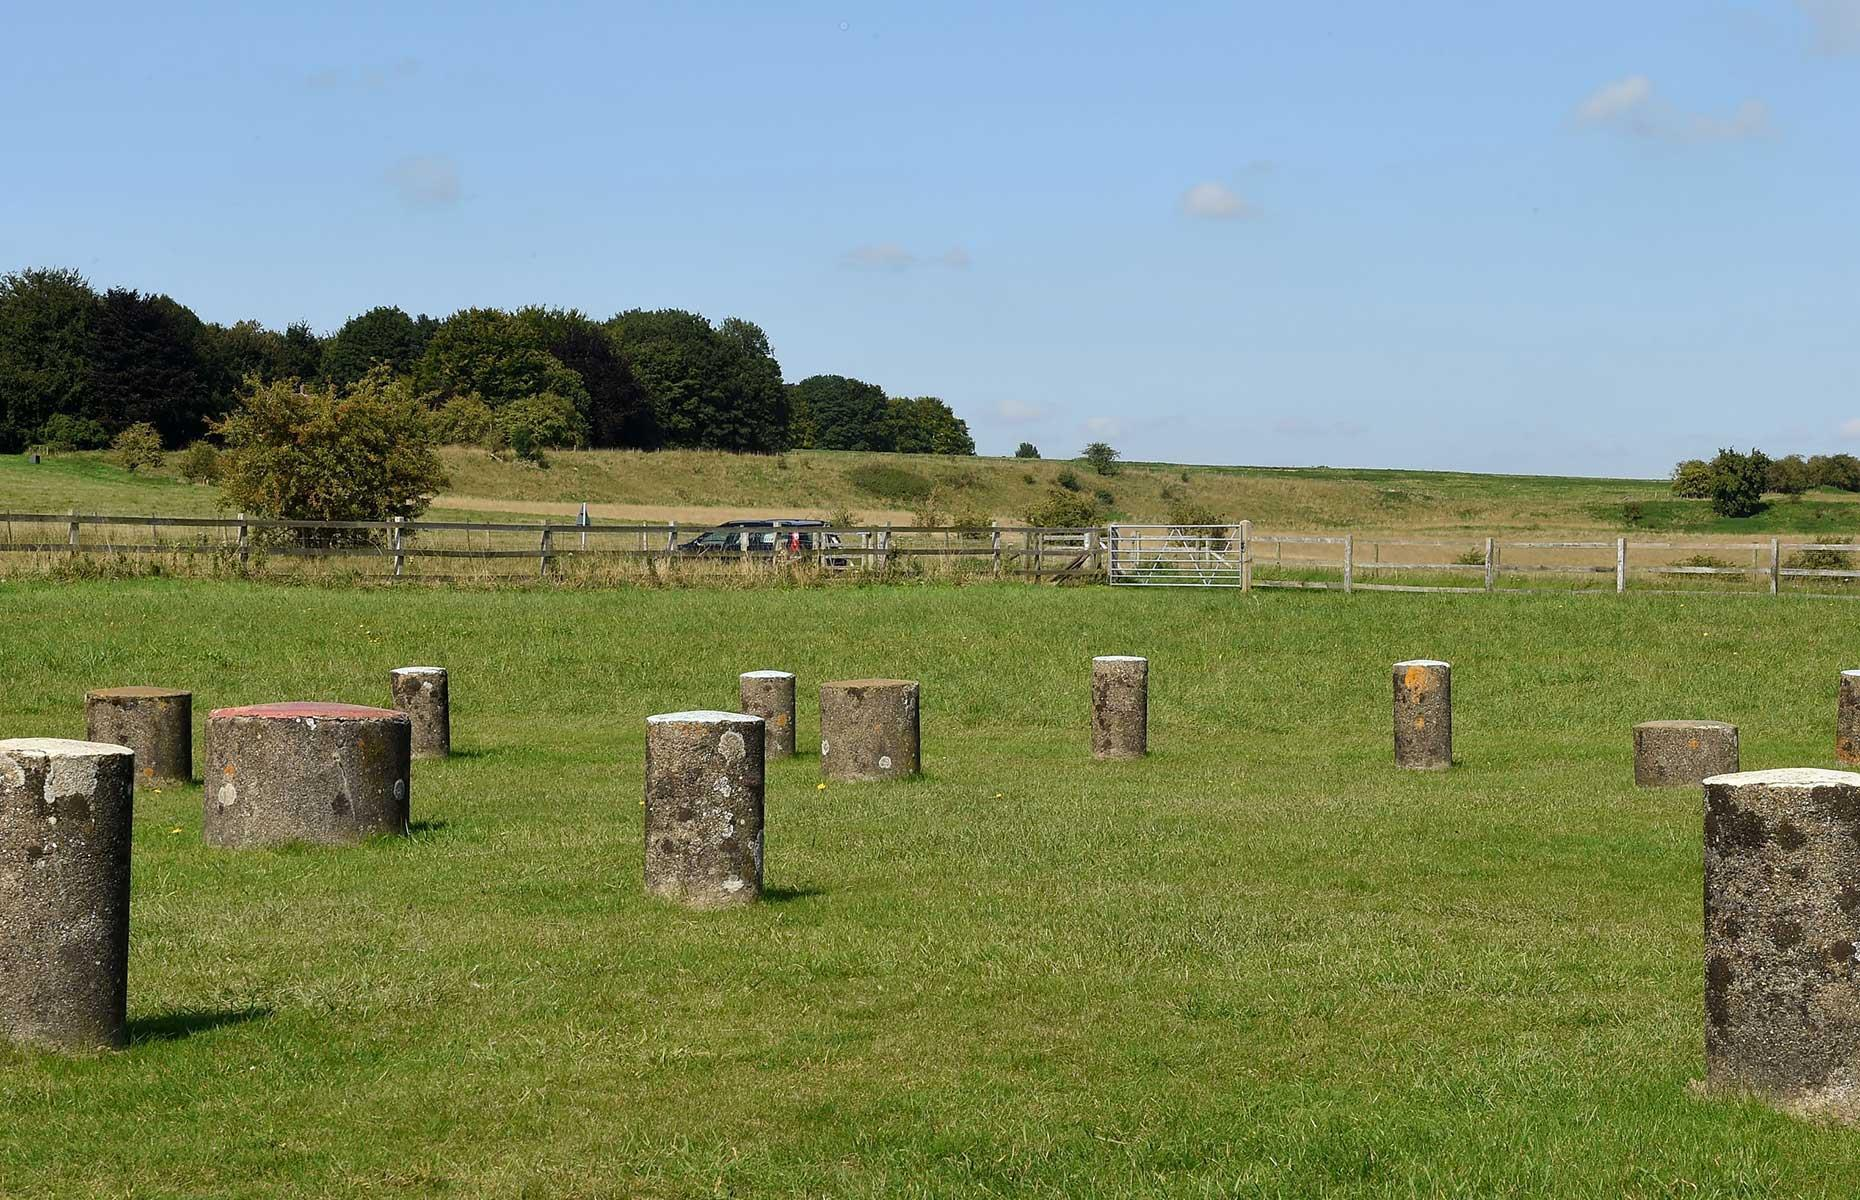 Slide 4 of 31: A circle of vast prehistoric shafts has been discovered just under two miles (3.2km) from Stonehenge. The 20 shafts – more than 33 feet (10m) in diameter and 16.4 feet (5m) deep – seem to have been designed to create a circle around Durrington Walls henge (pictured here) and Woodhenge, another smaller prehistoric circle to the south. Radiocarbon dating revealed the shafts are 4,500 years old and from the Neolithic period. It's likely the same people who constructed Stonehenge built the shafts at Durrington Walls, now the largest prehistoric site discovered to date in the UK.